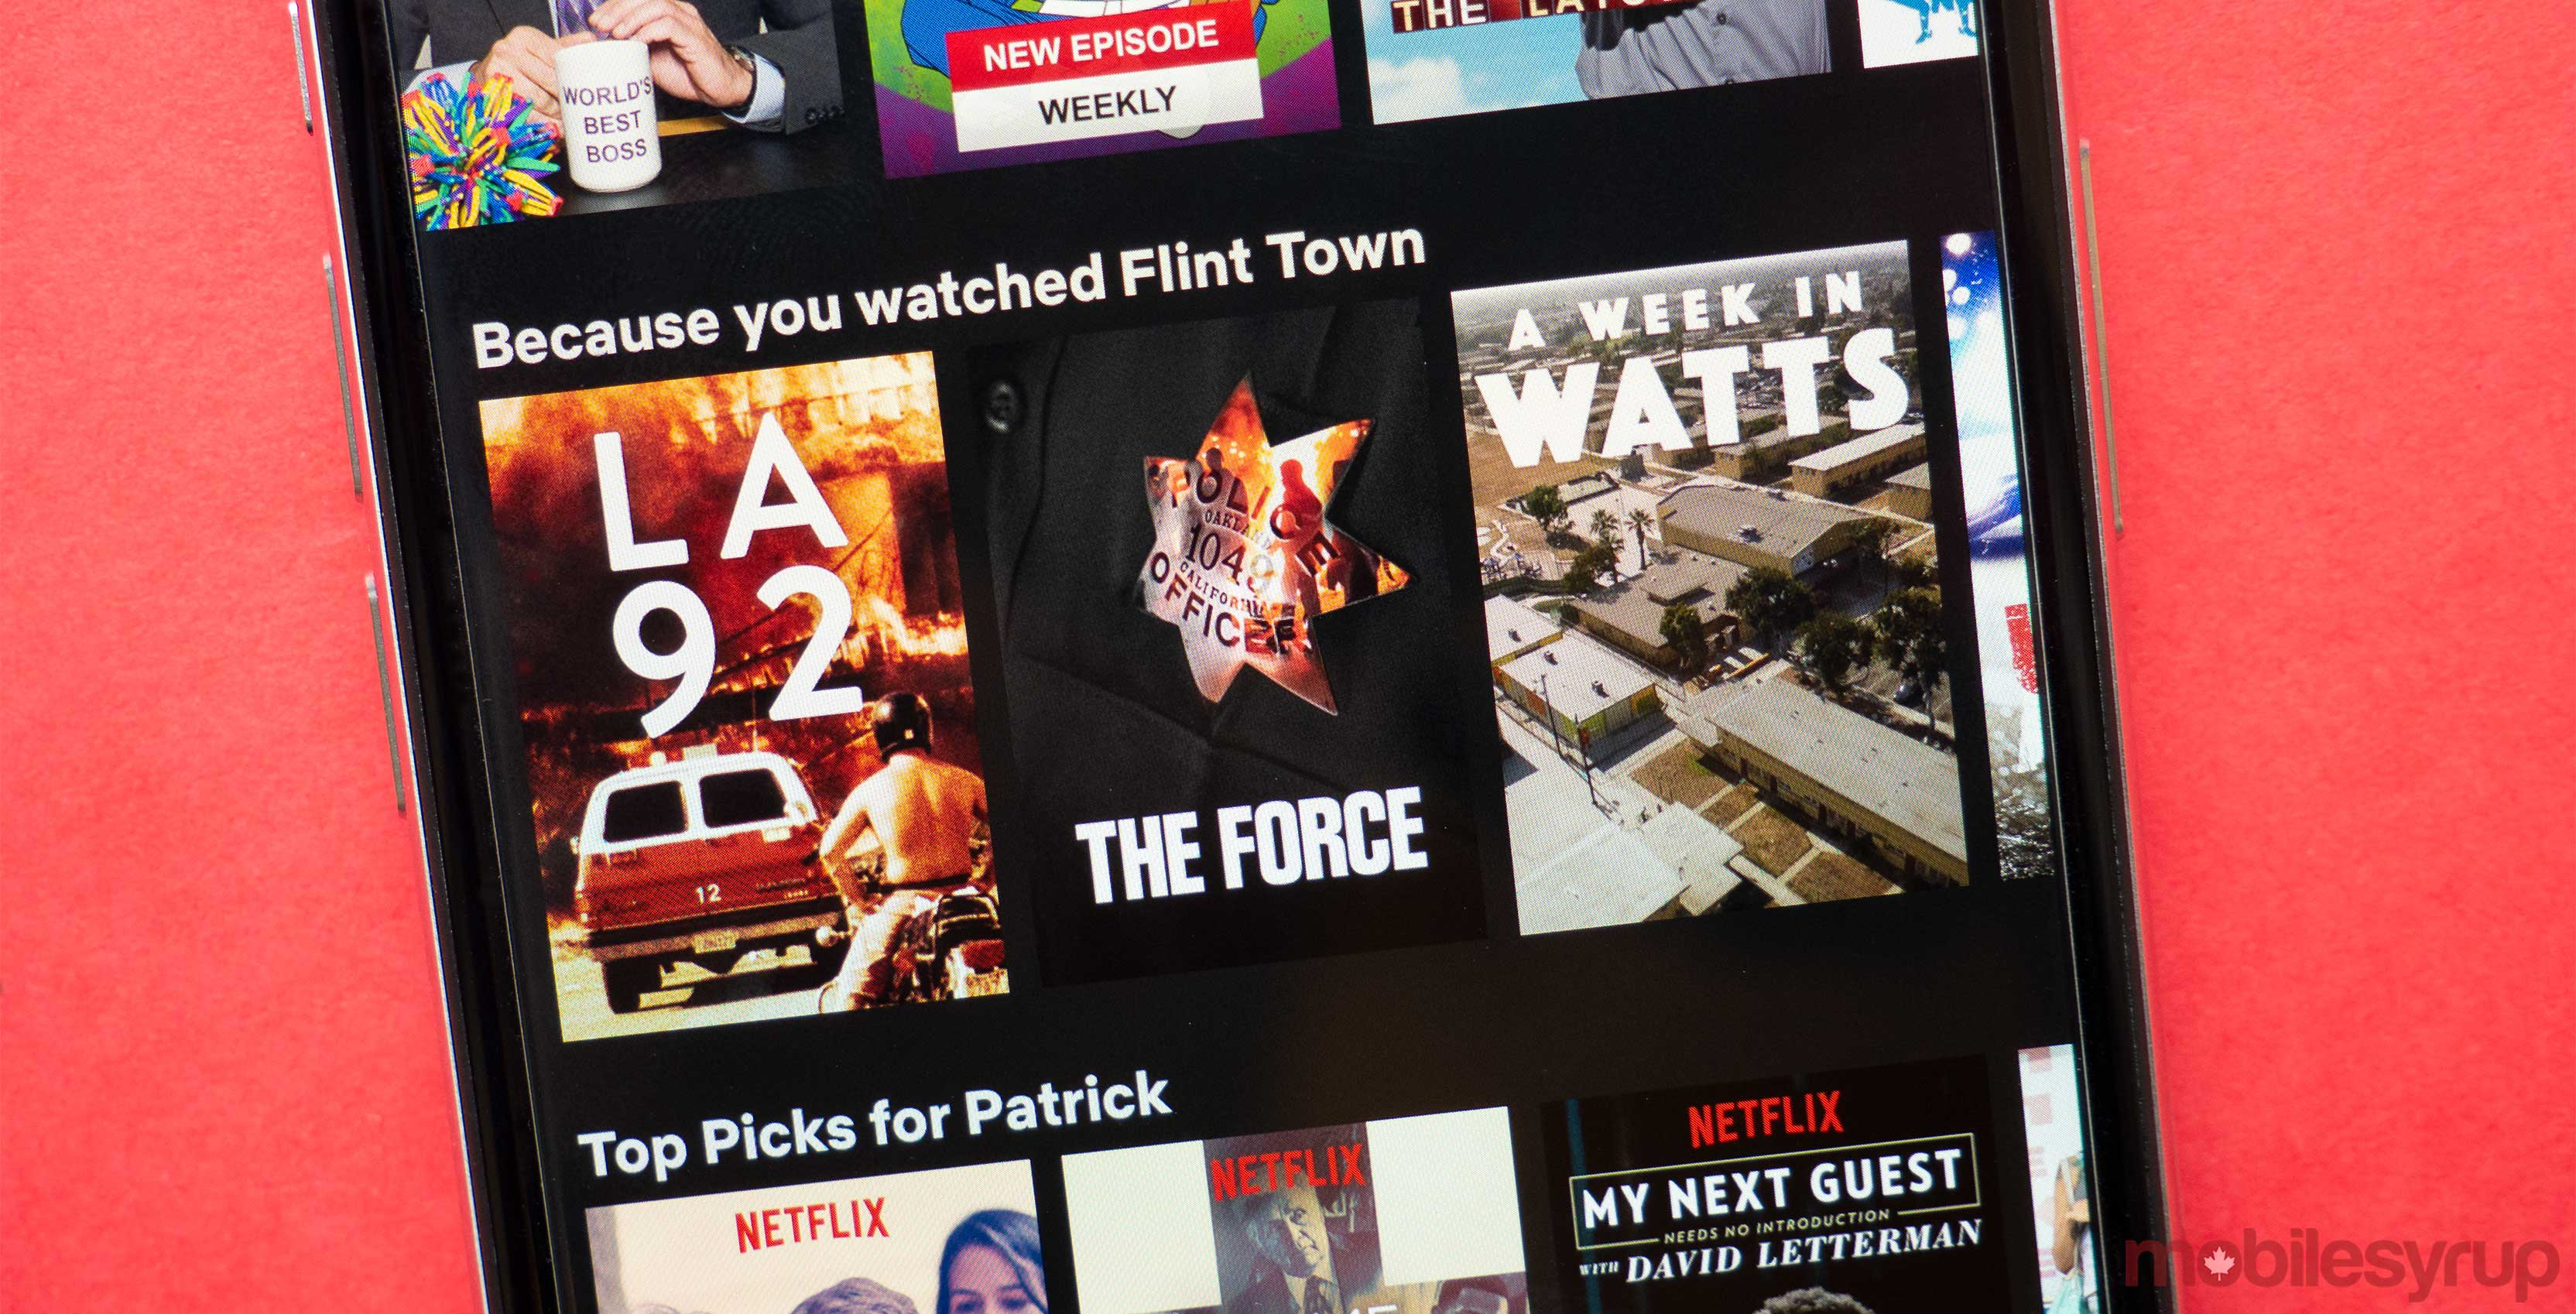 Here's how to make Netflix's recommendations not suck